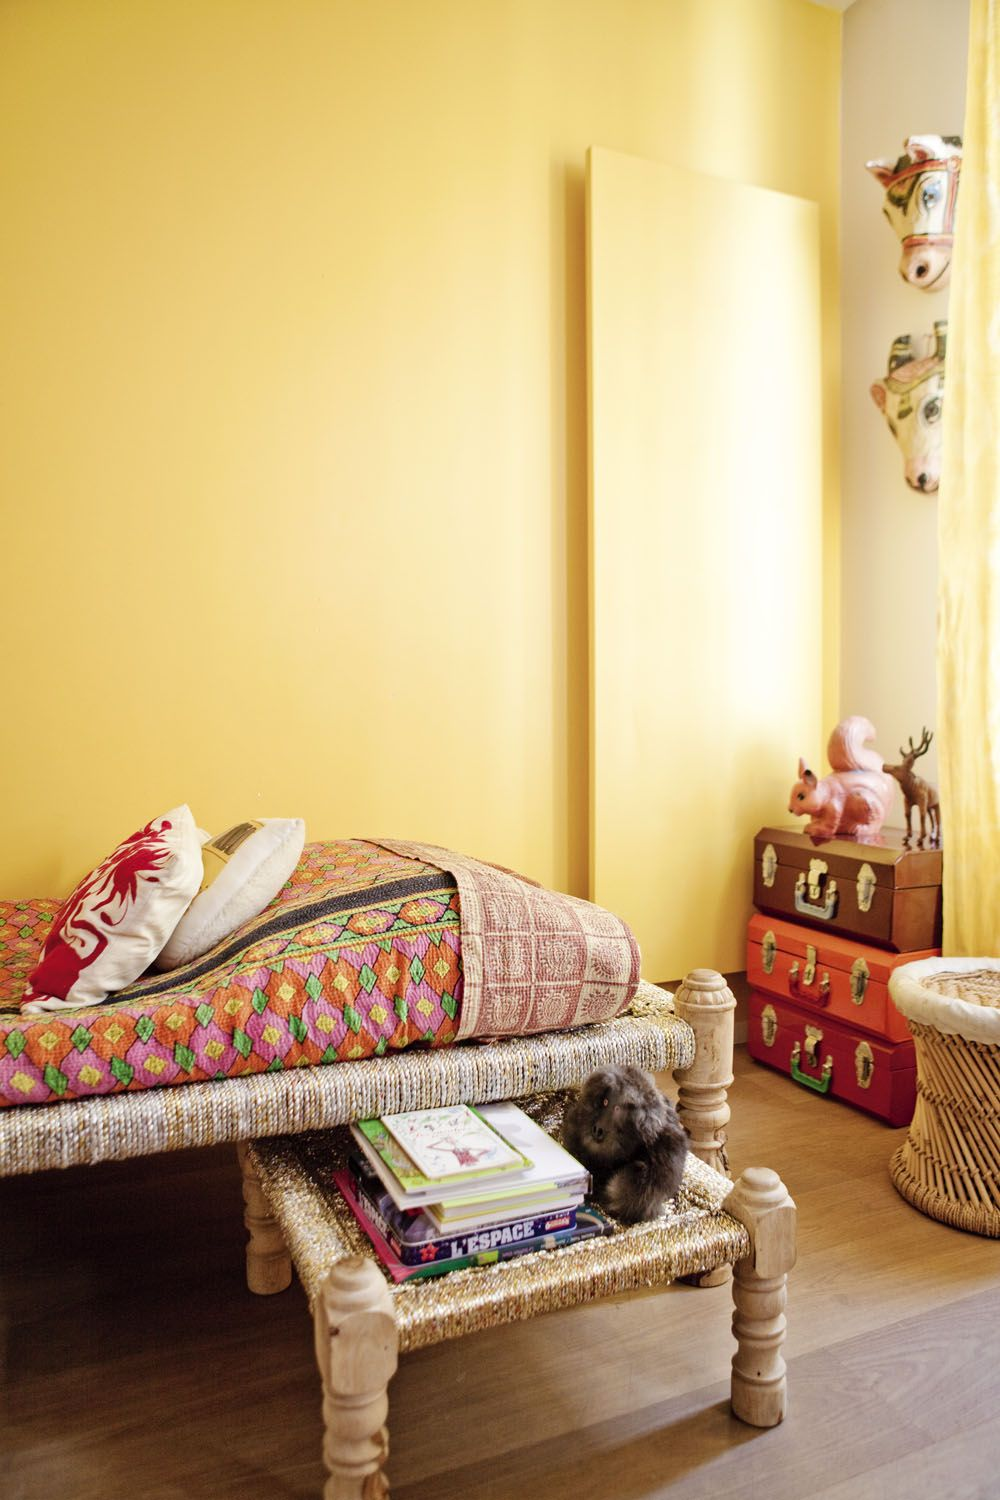 Paris : french bollywood | Yellow wall decor, India and Interiors